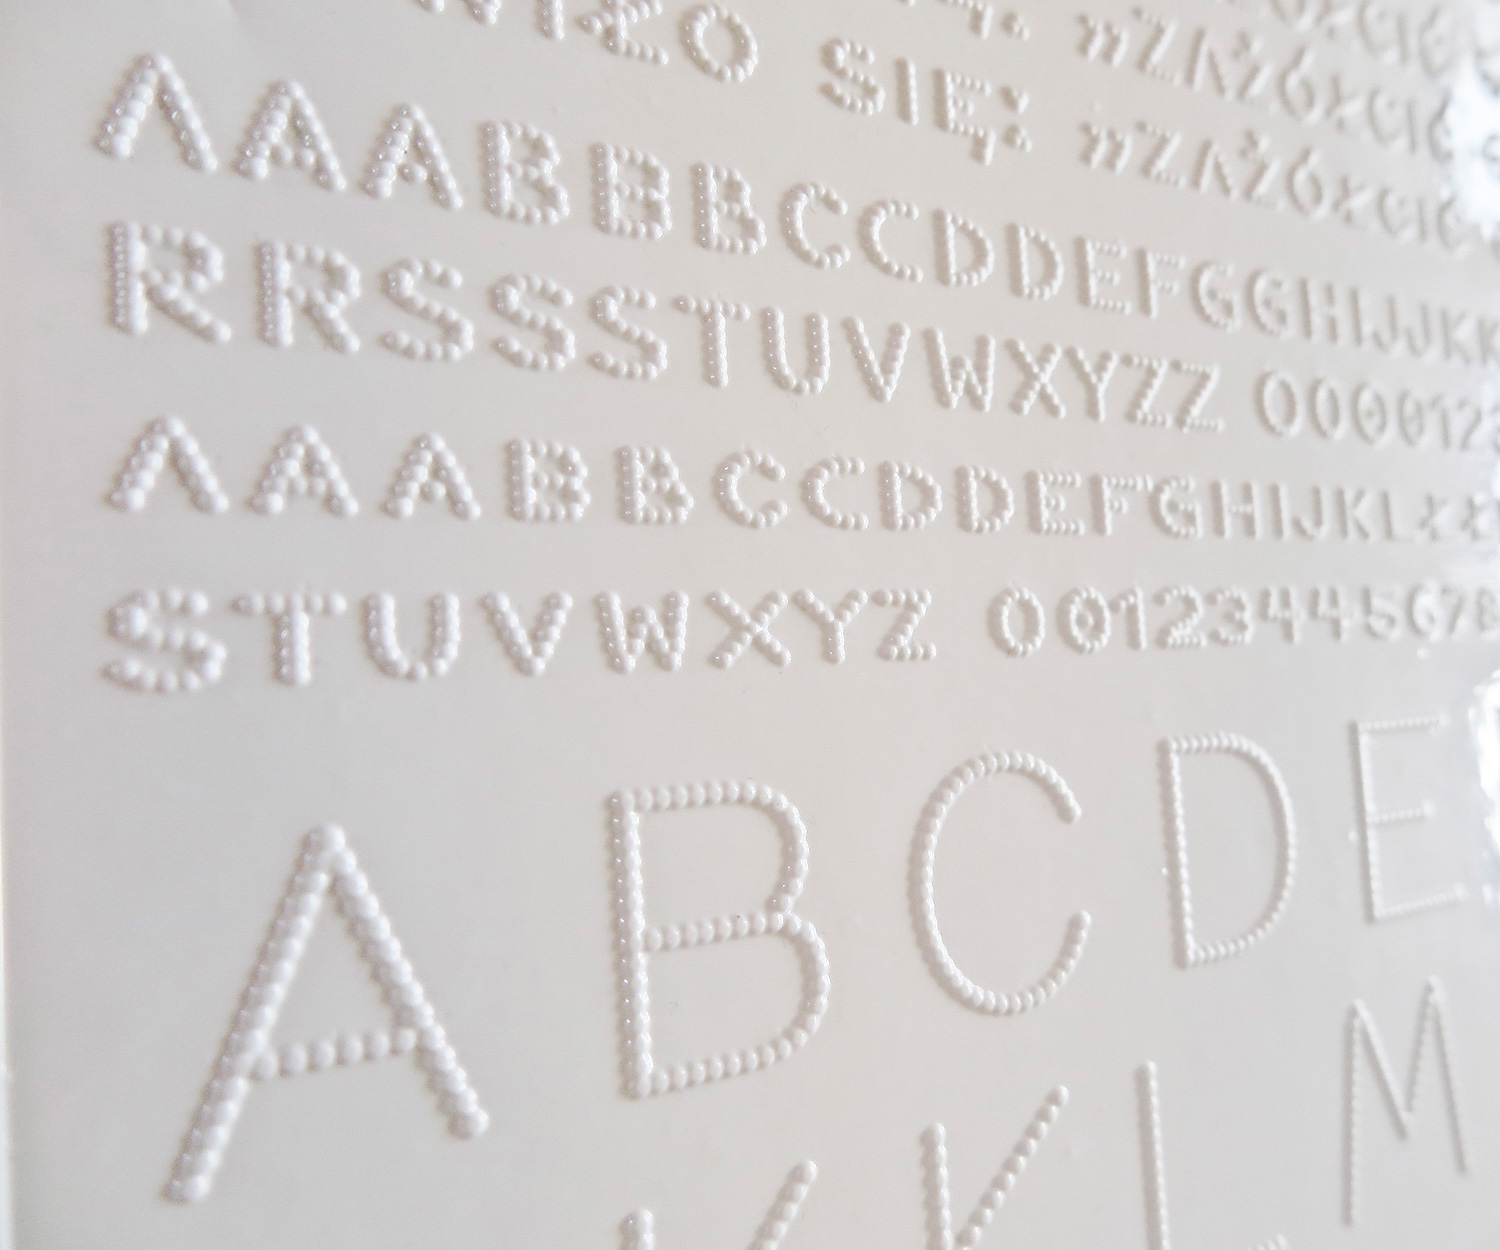 Viktoriya Grabowska's pioneering digital typeface for visually impaired people